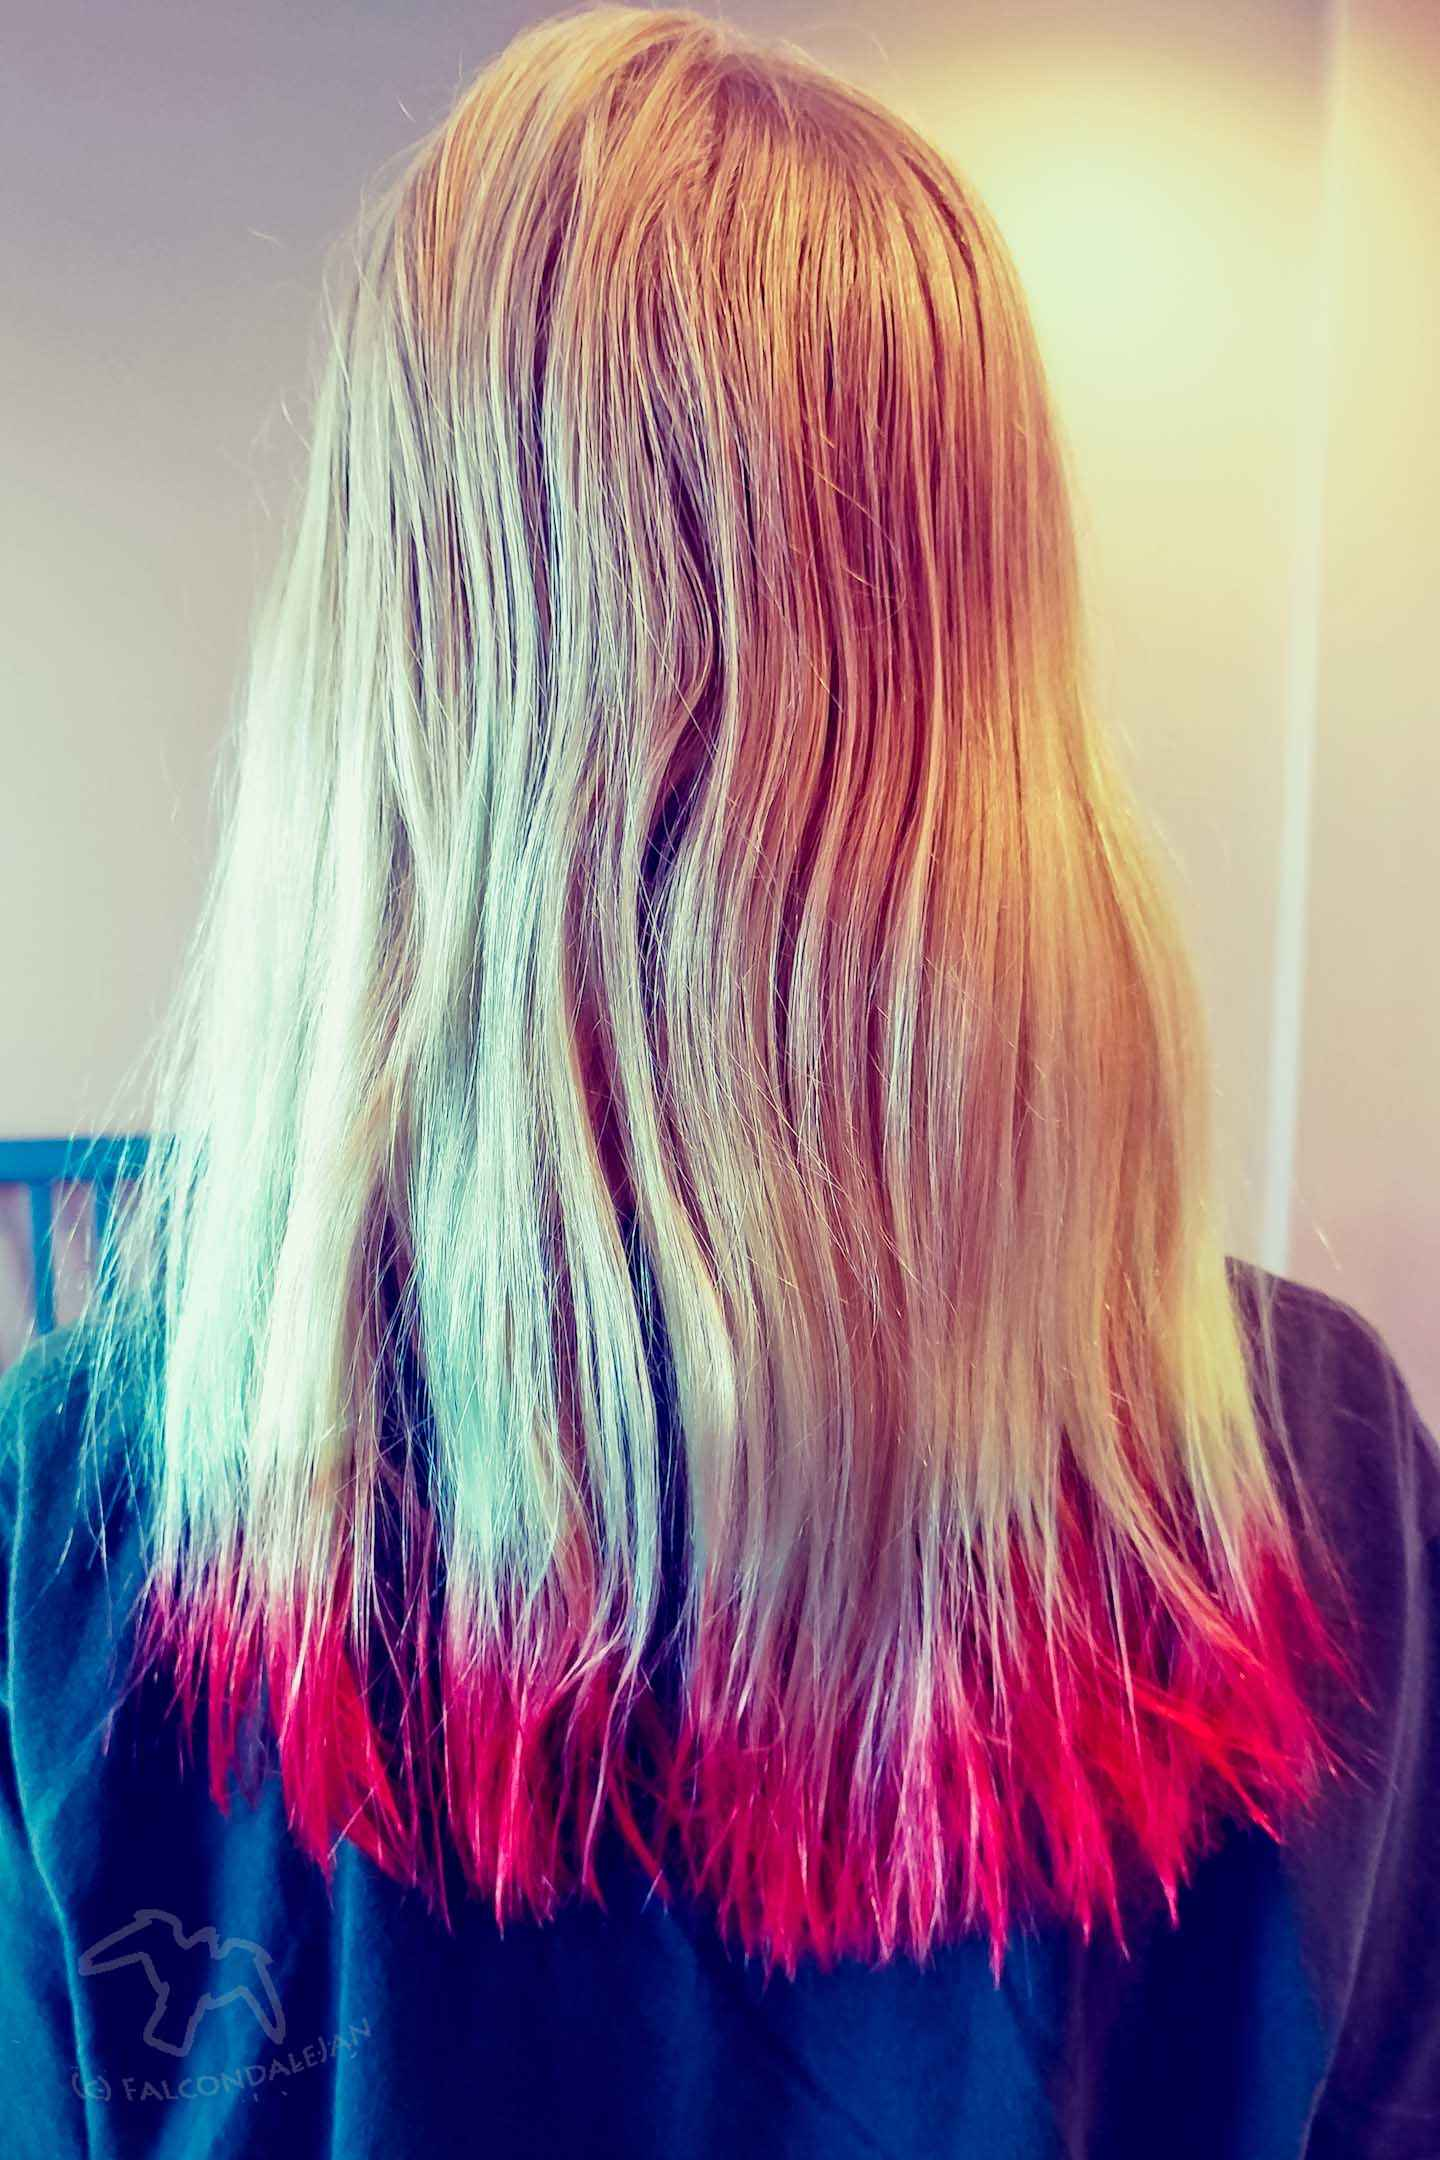 Is it safe to dye children's hair, and should parents agree to it? When your teen or tween wants hair dye here are points about safety and school rules. Things to consider when your teen or tween wants hair dye on Falcondale Life blog. Image description: child with dip dye hair